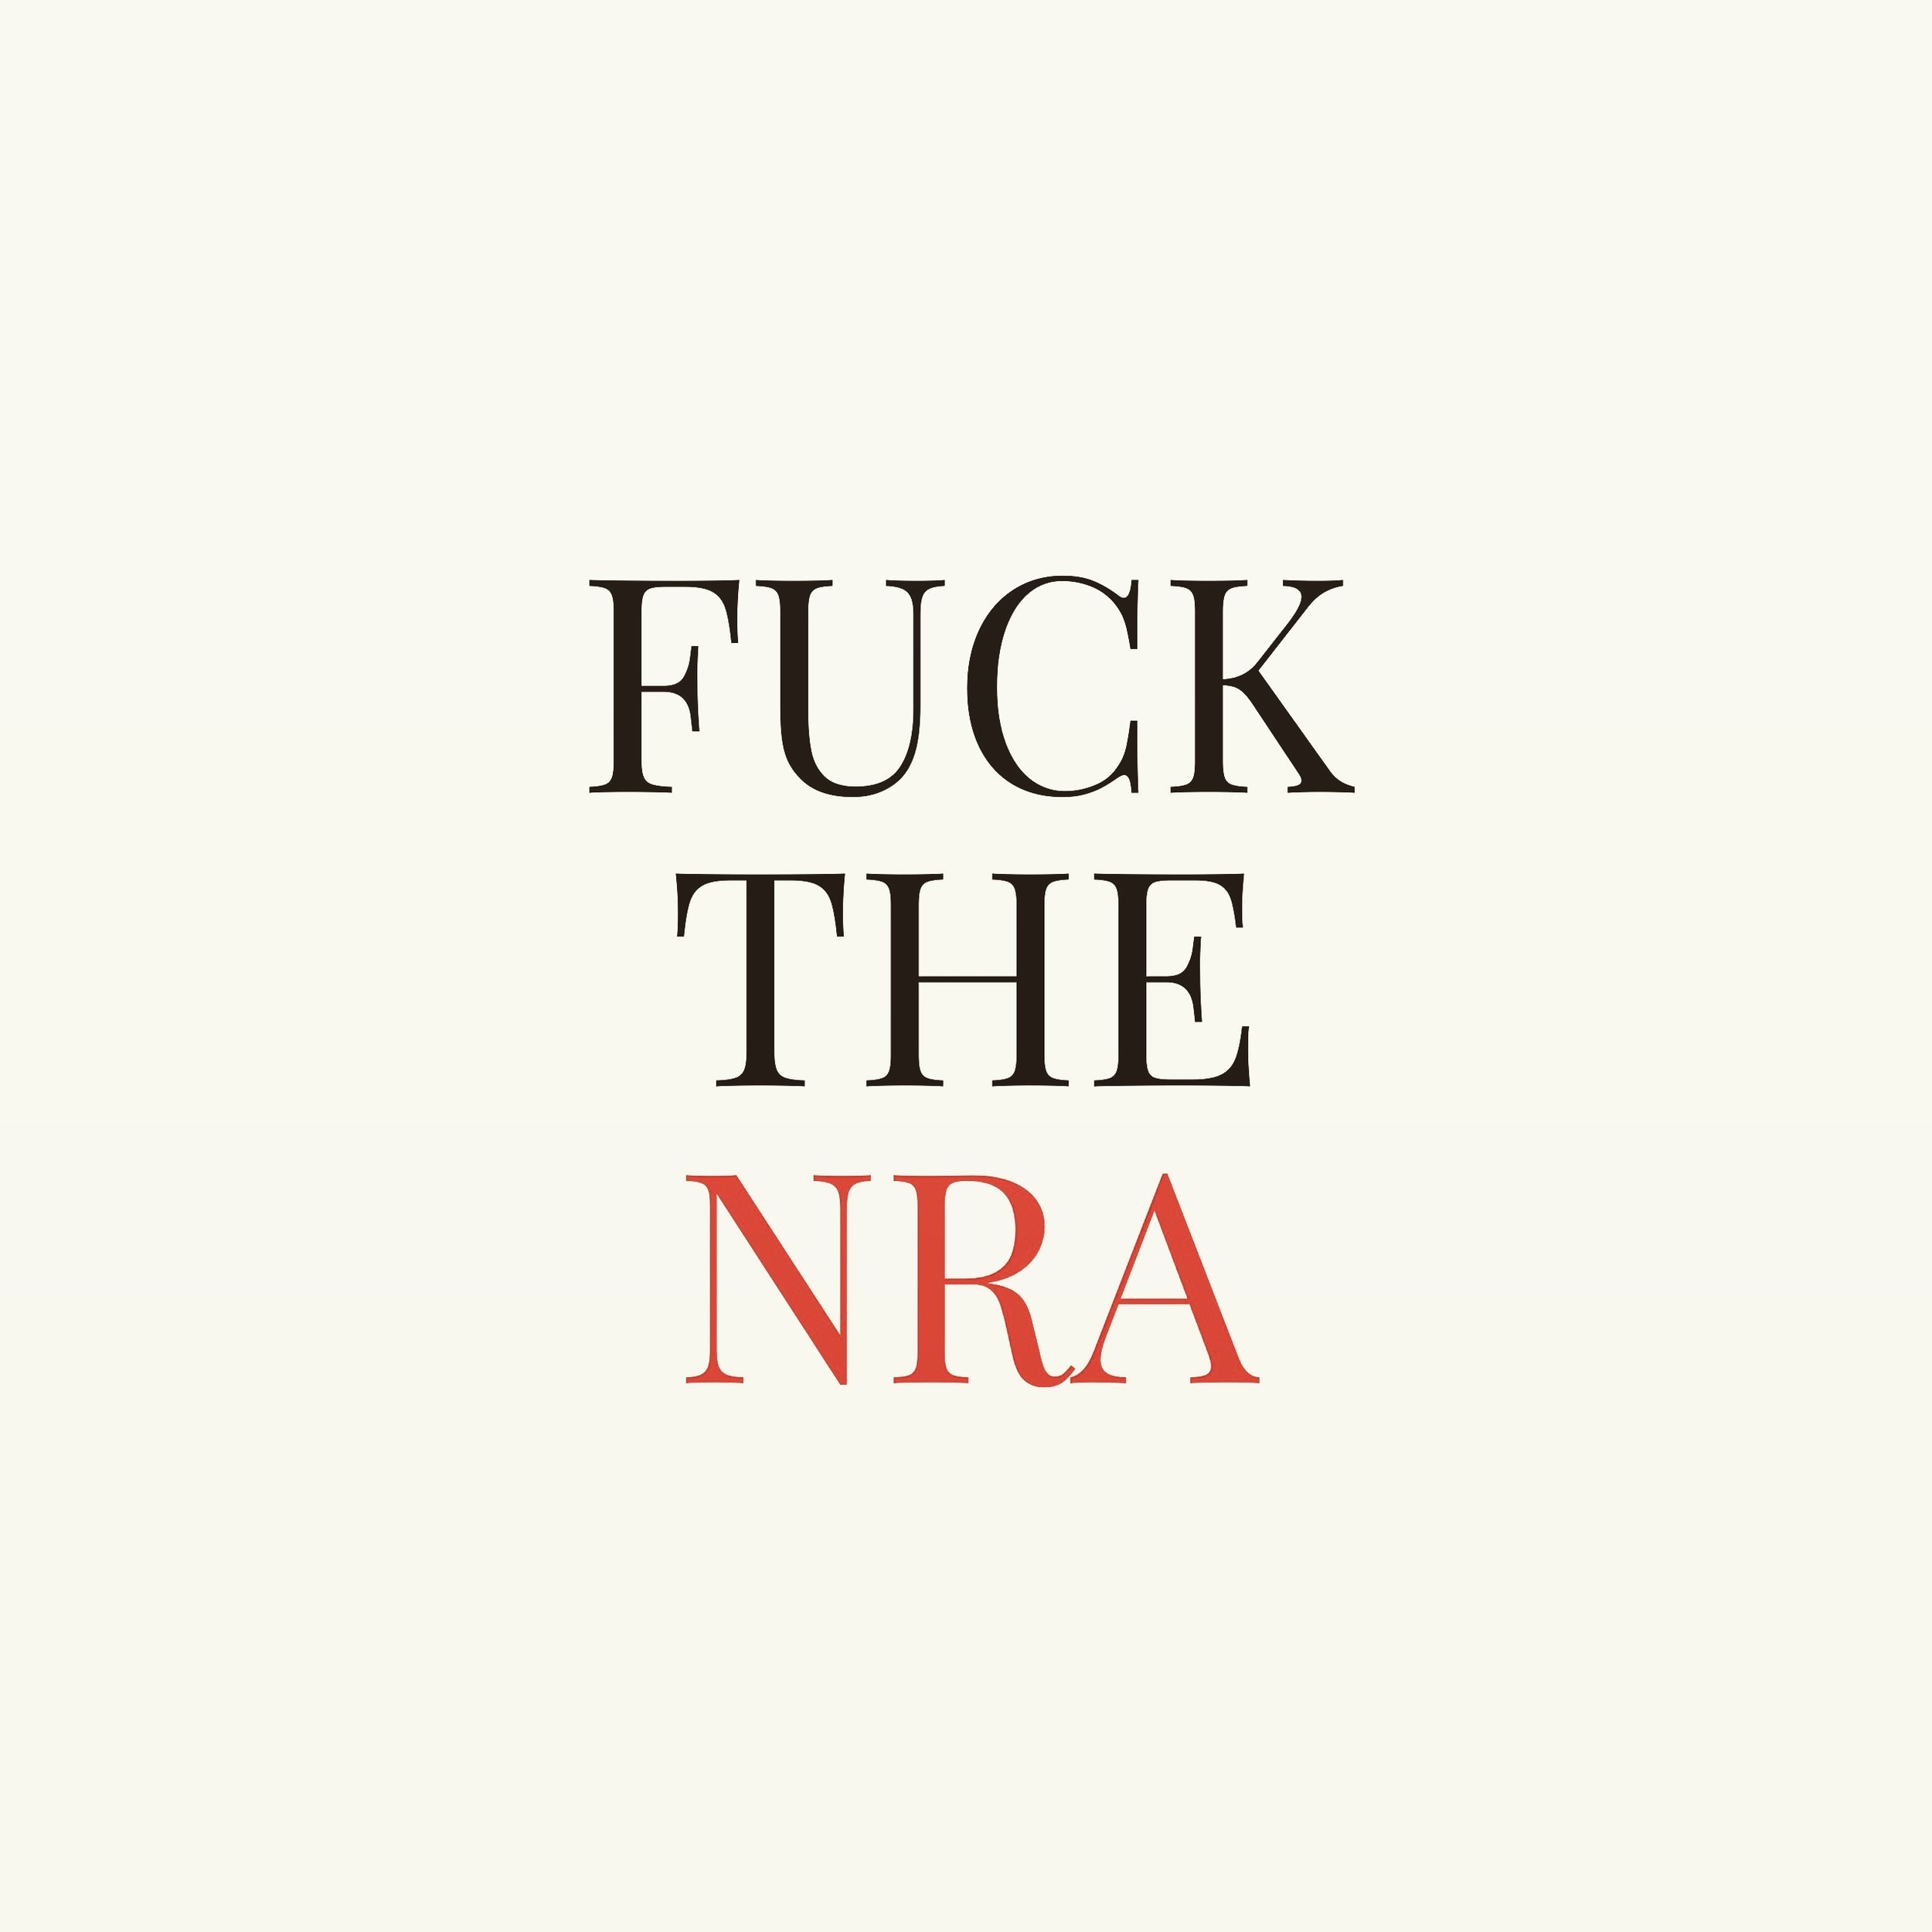 fuck-the-nra.JPG